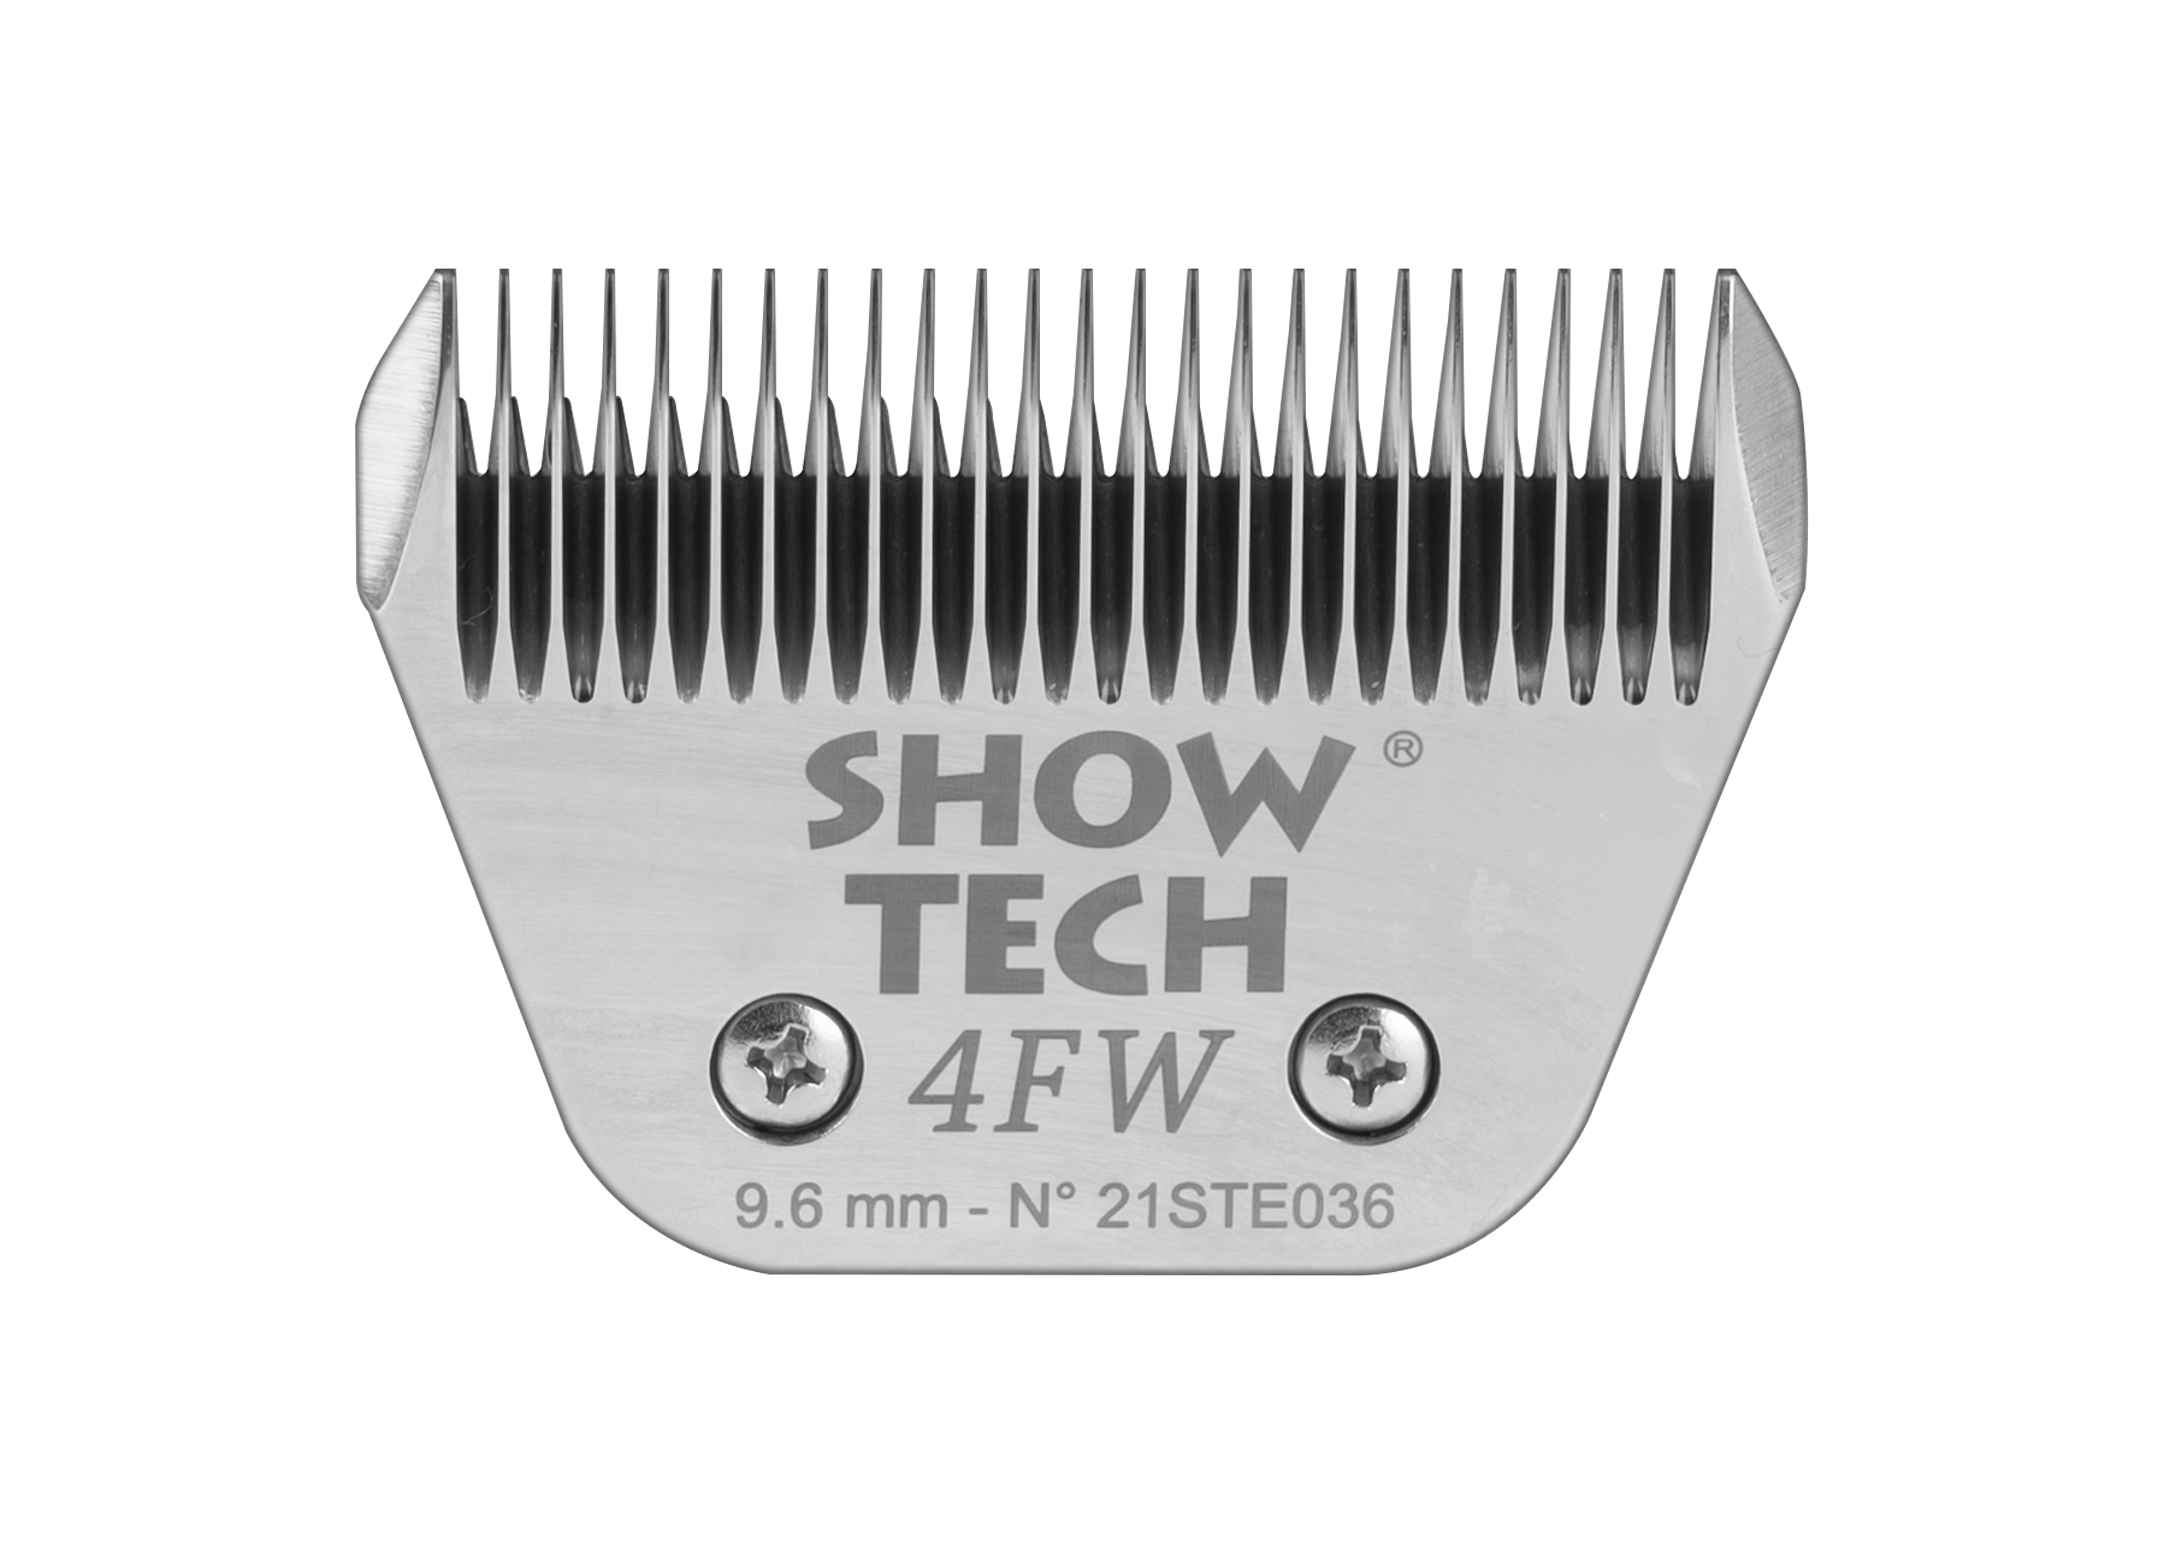 Show Tech Pro Blades snap-on Clipper Blade #4FW - 9,6mm